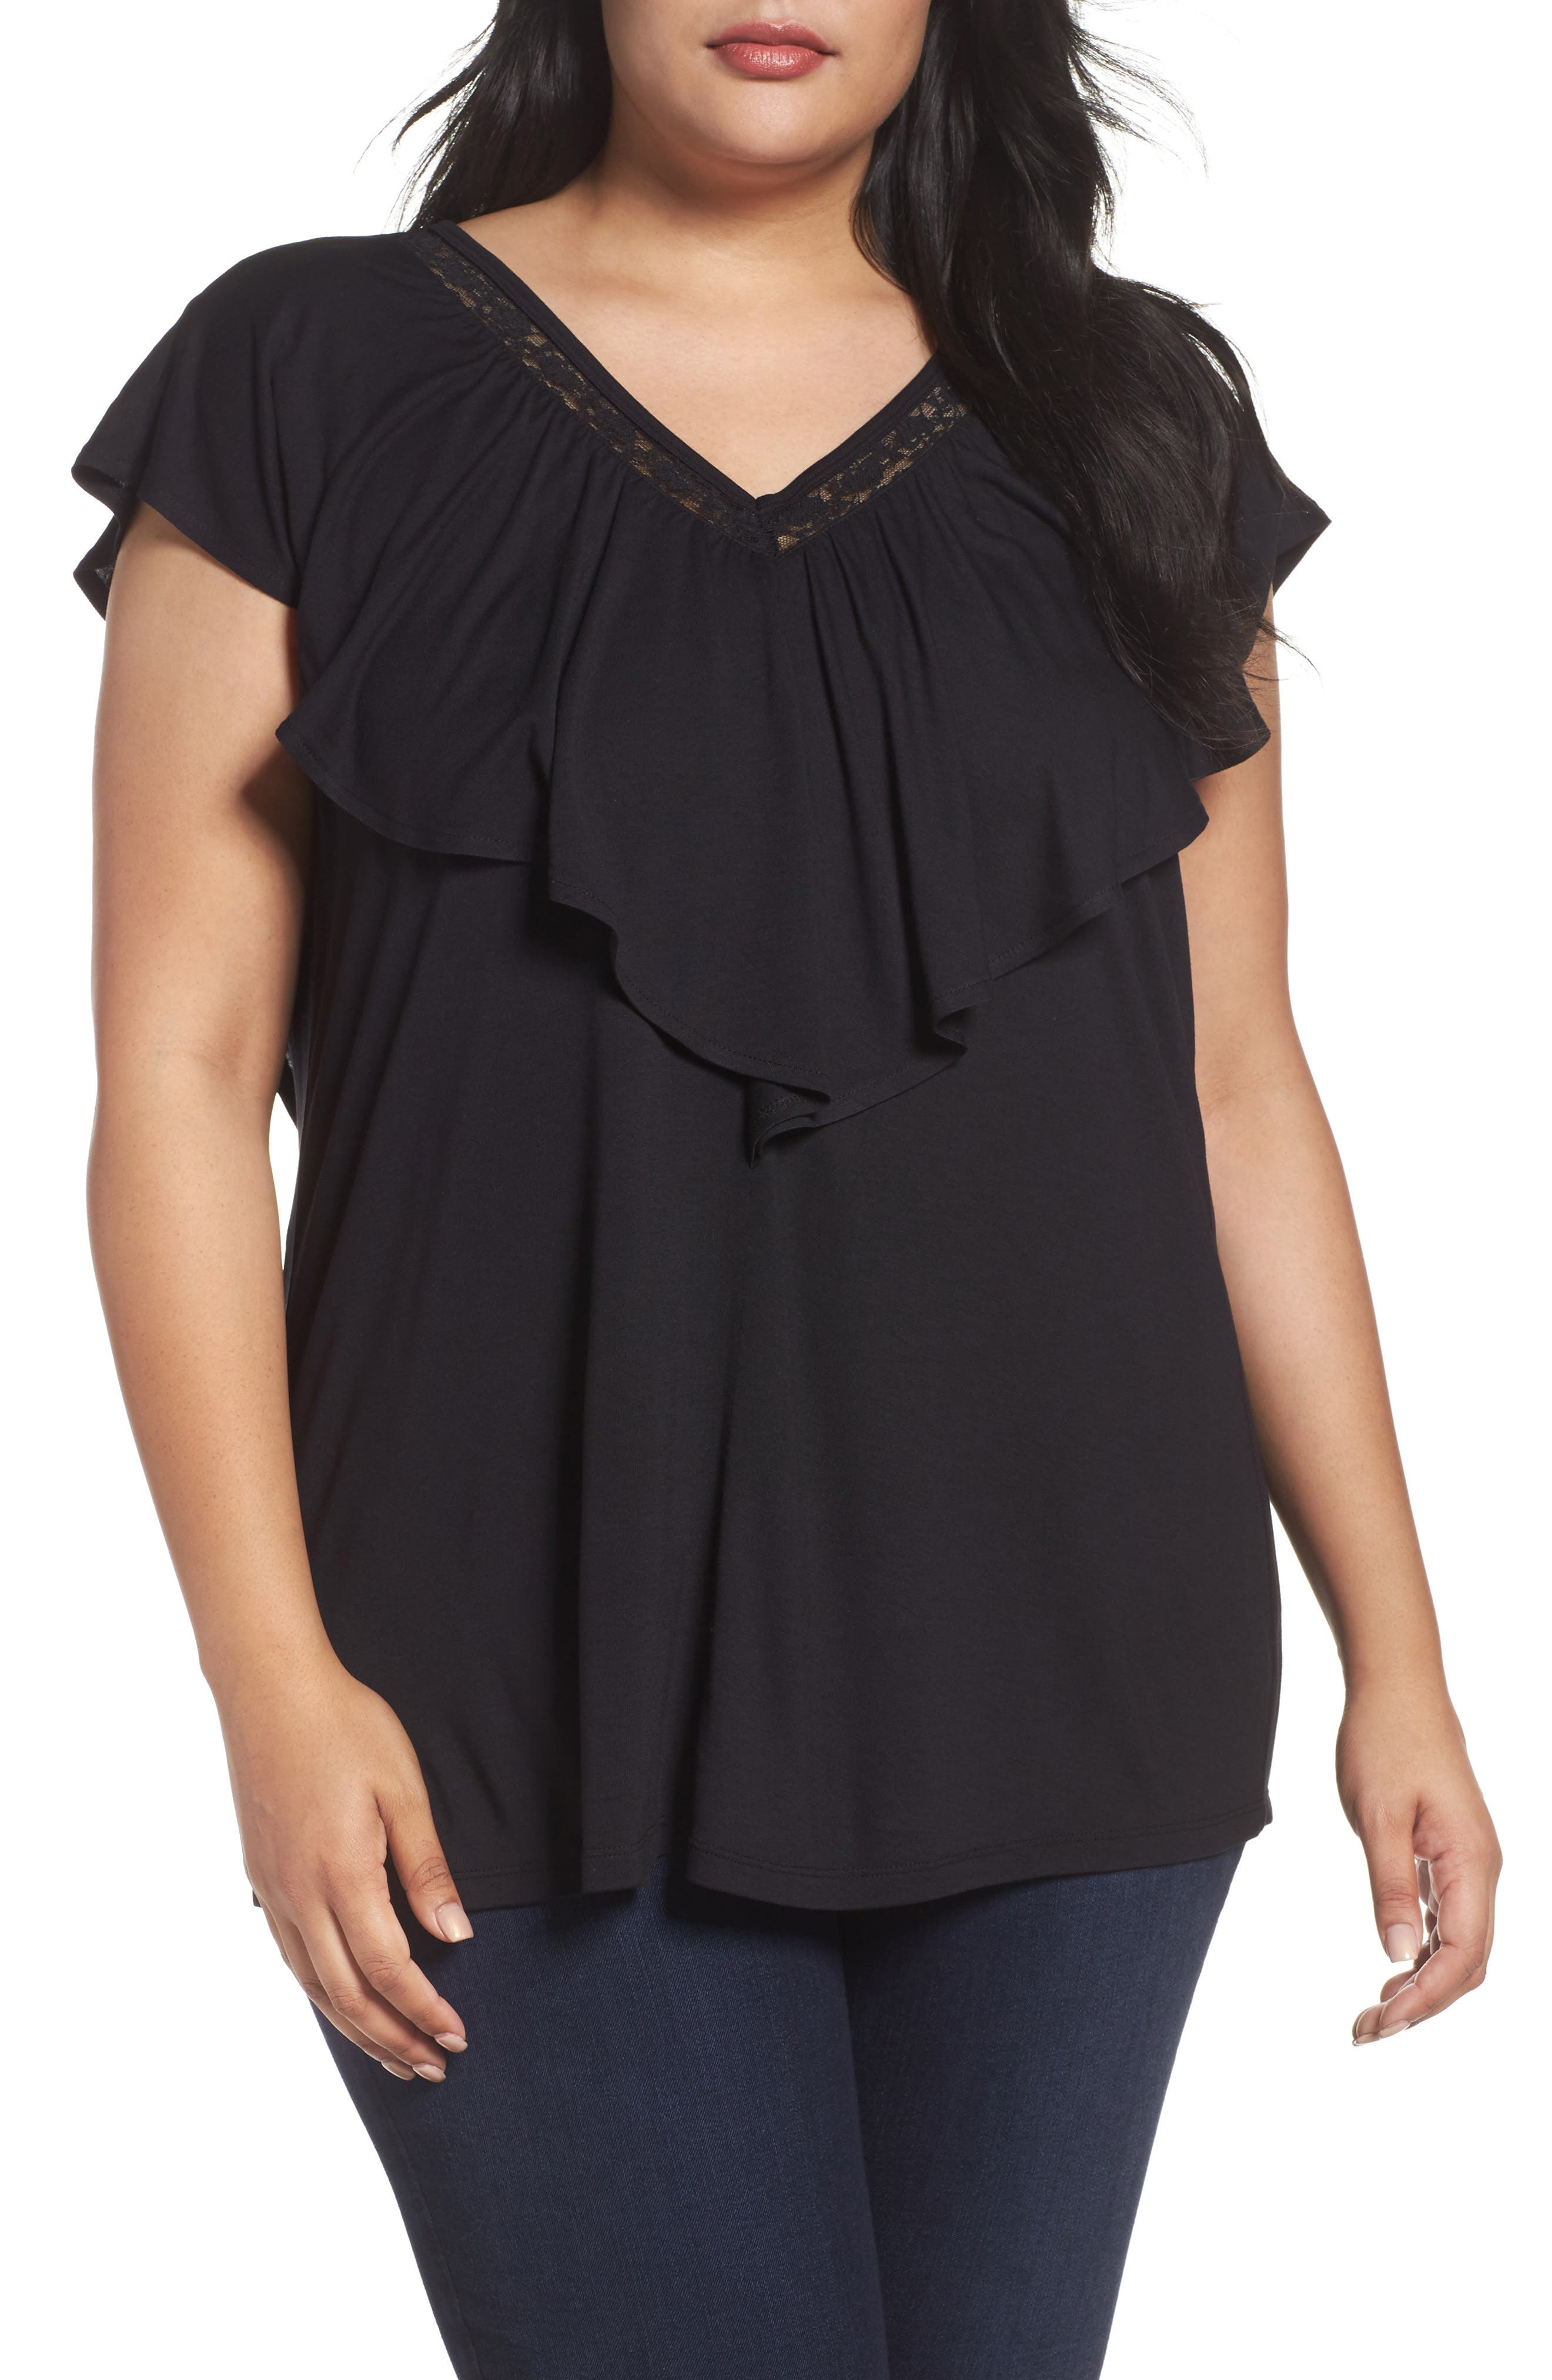 Alternate Image 1 Selected - Sejour Lace Trim Ruffle Tee (Plus Size)